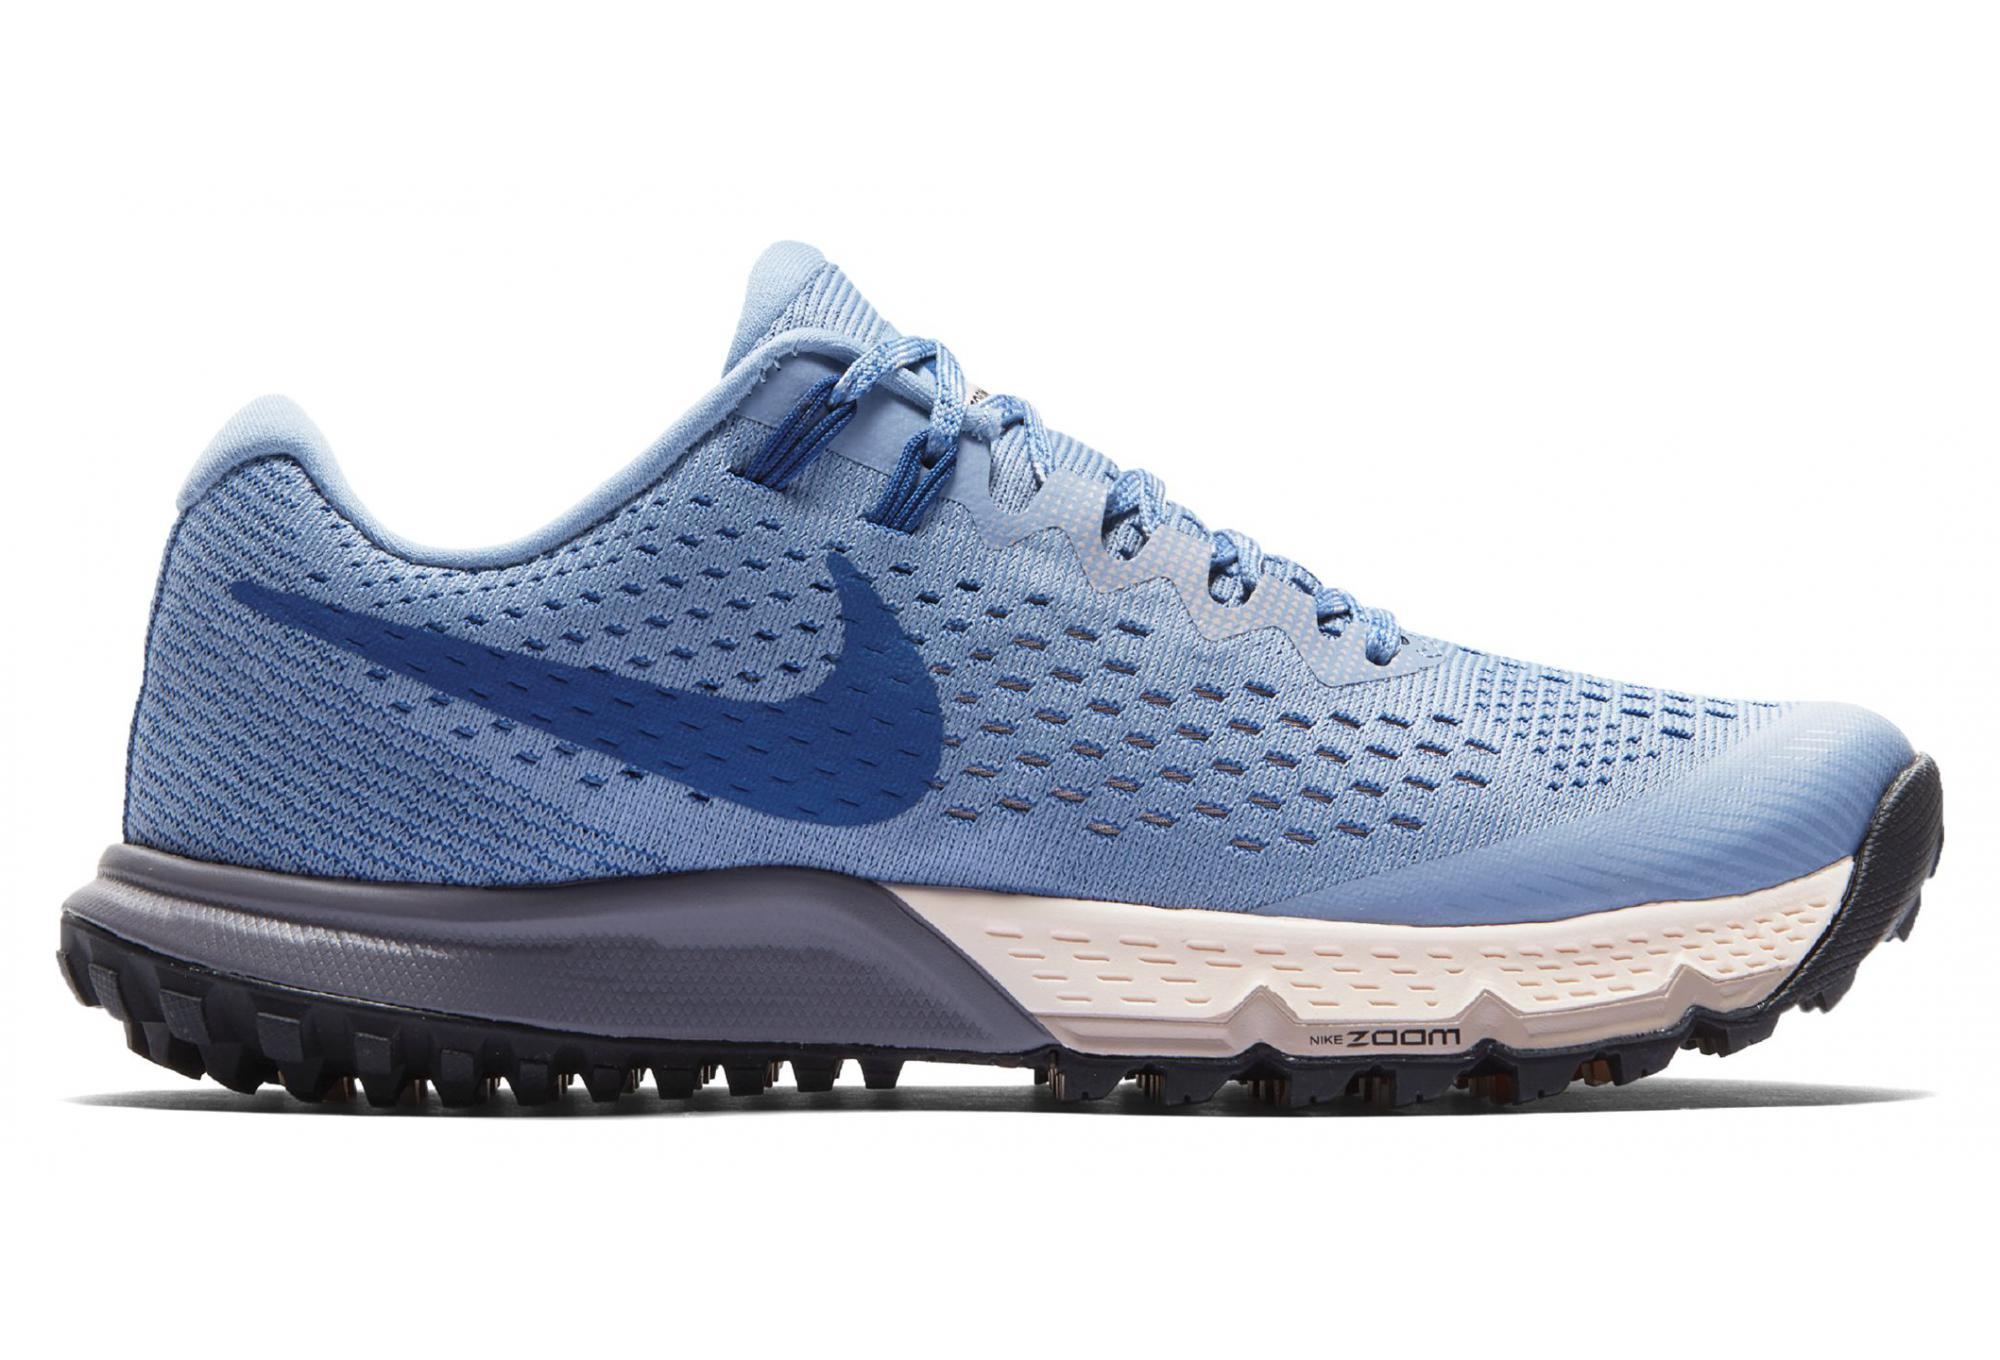 df0abfc40b10d Nike Shoes Air Zoom Terra Kiger 4 Blue Women